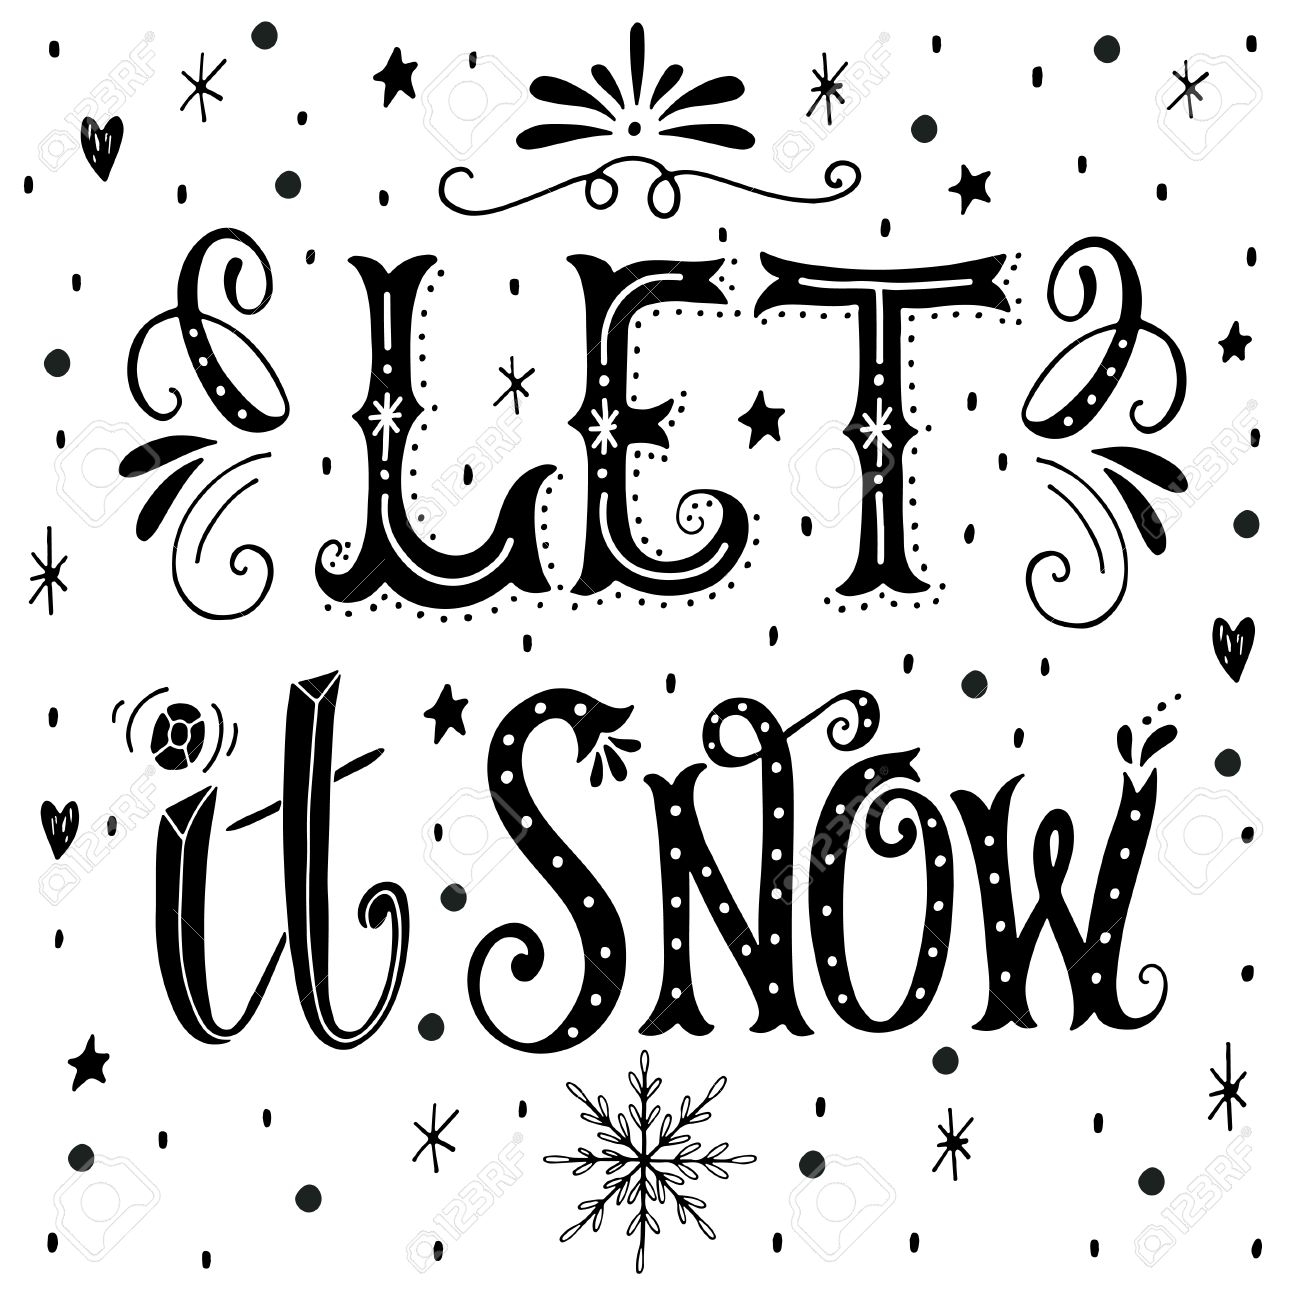 Wonderful Let It Snow. Christmas Retro Poster With Hand Lettering And Winter  OL66